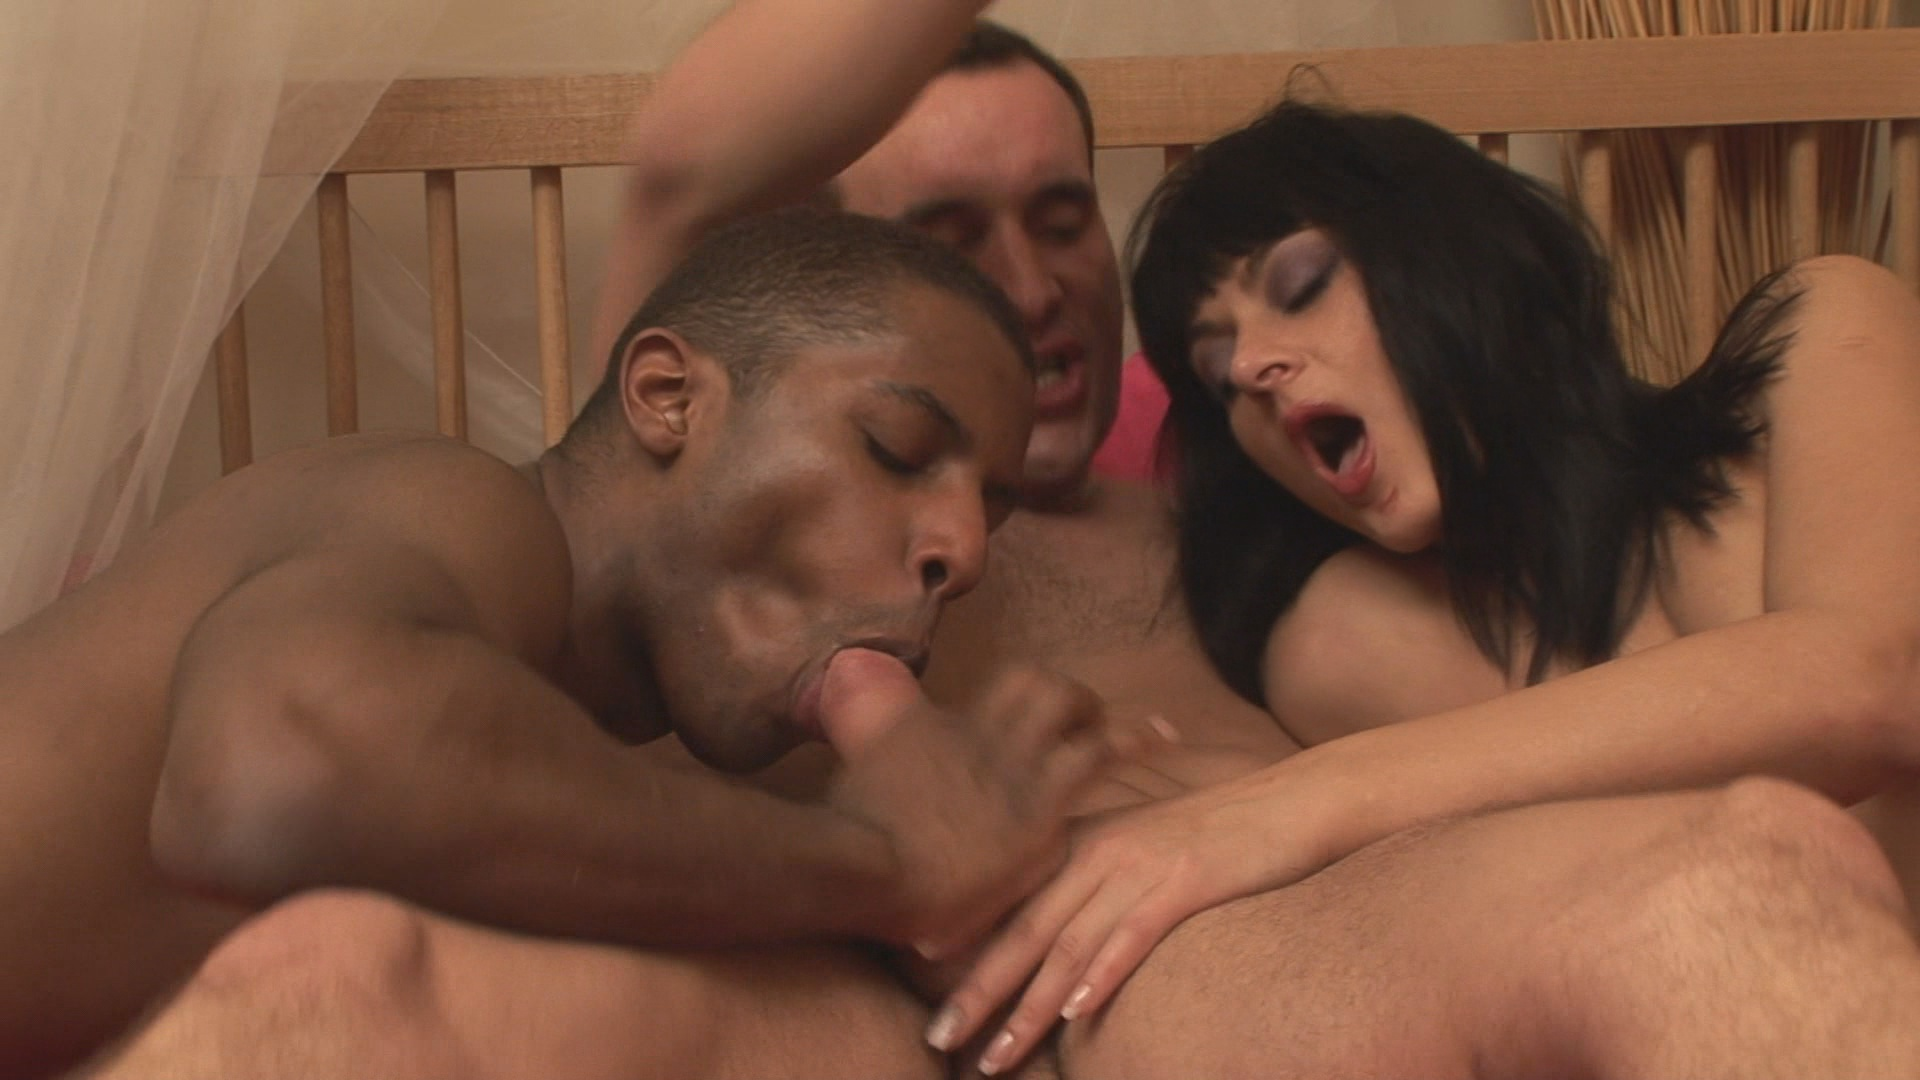 action bisexual black porn - bisexual